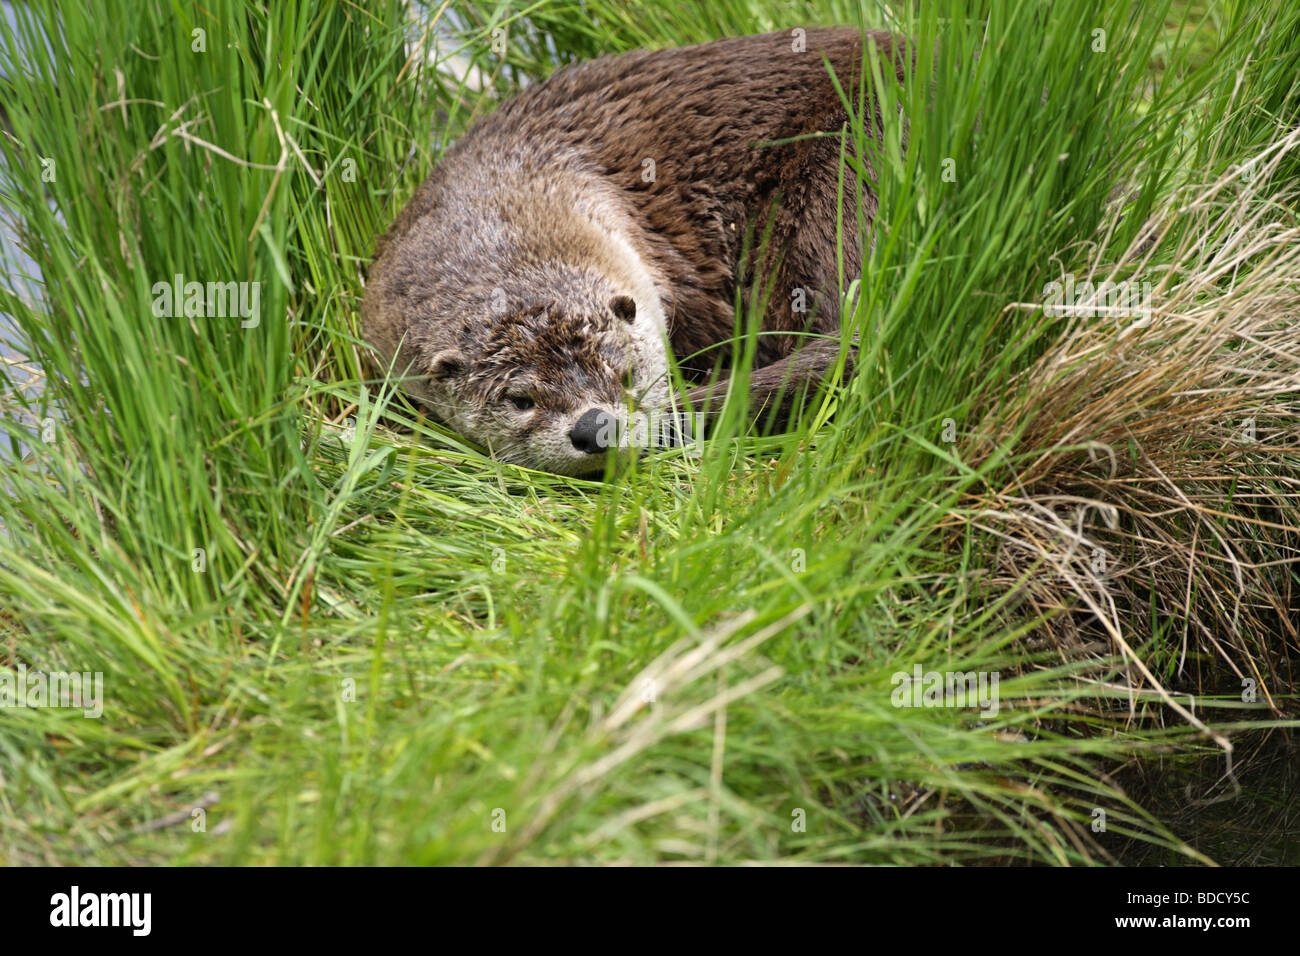 river otter alert stockfotos river otter alert bilder alamy. Black Bedroom Furniture Sets. Home Design Ideas